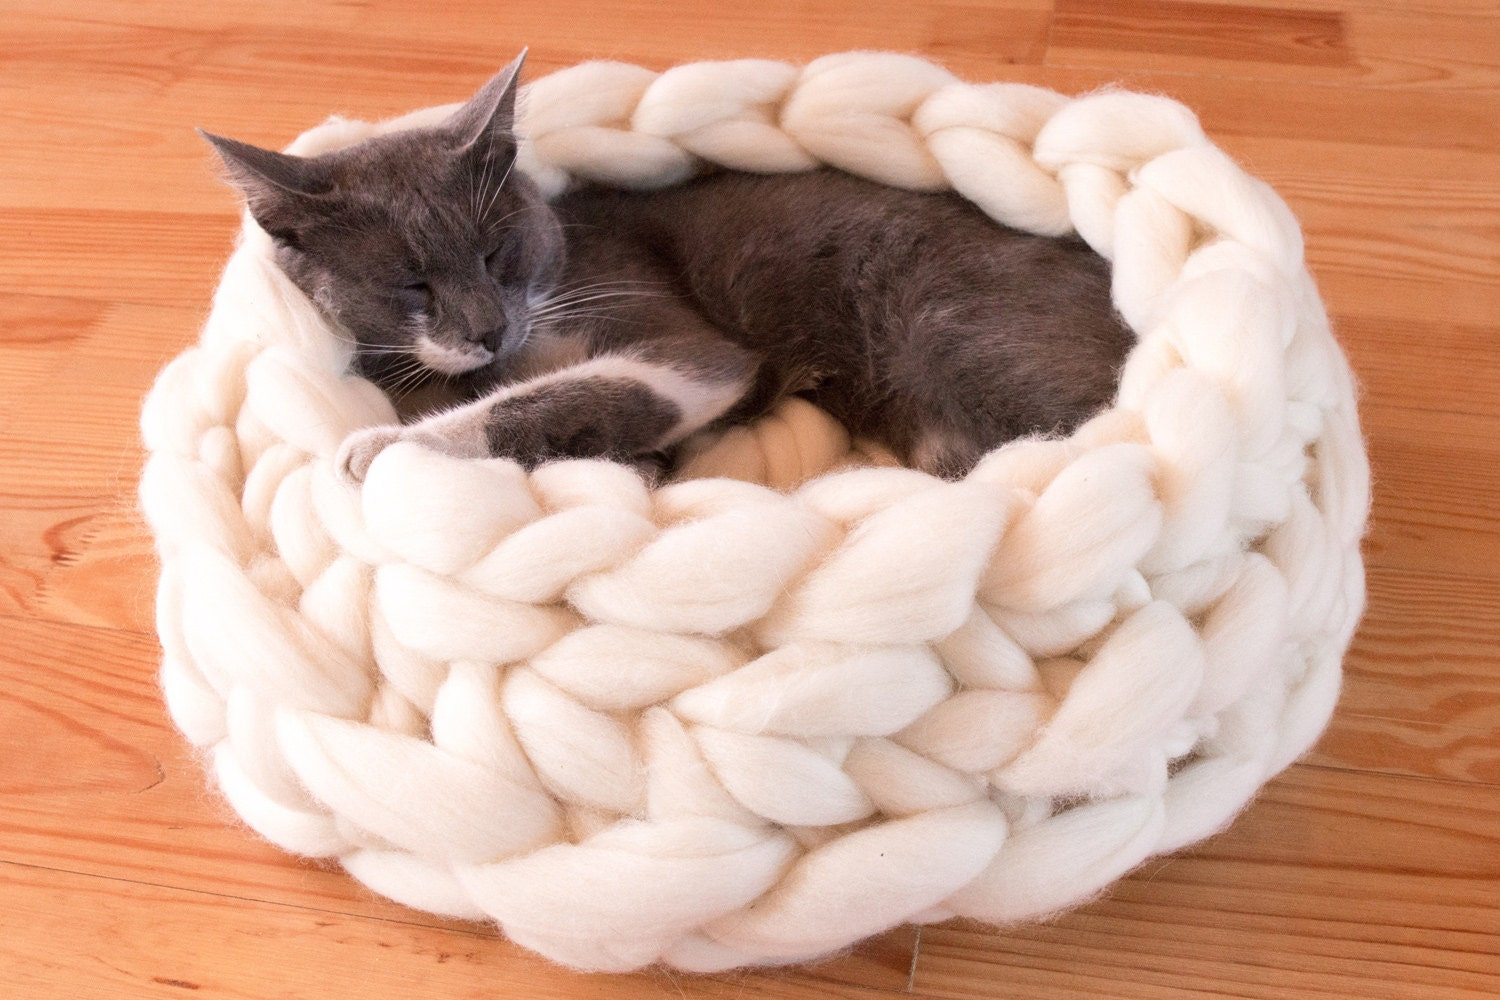 Knit Cat Bed Pattern Choice Image - handicraft ideas home decorating